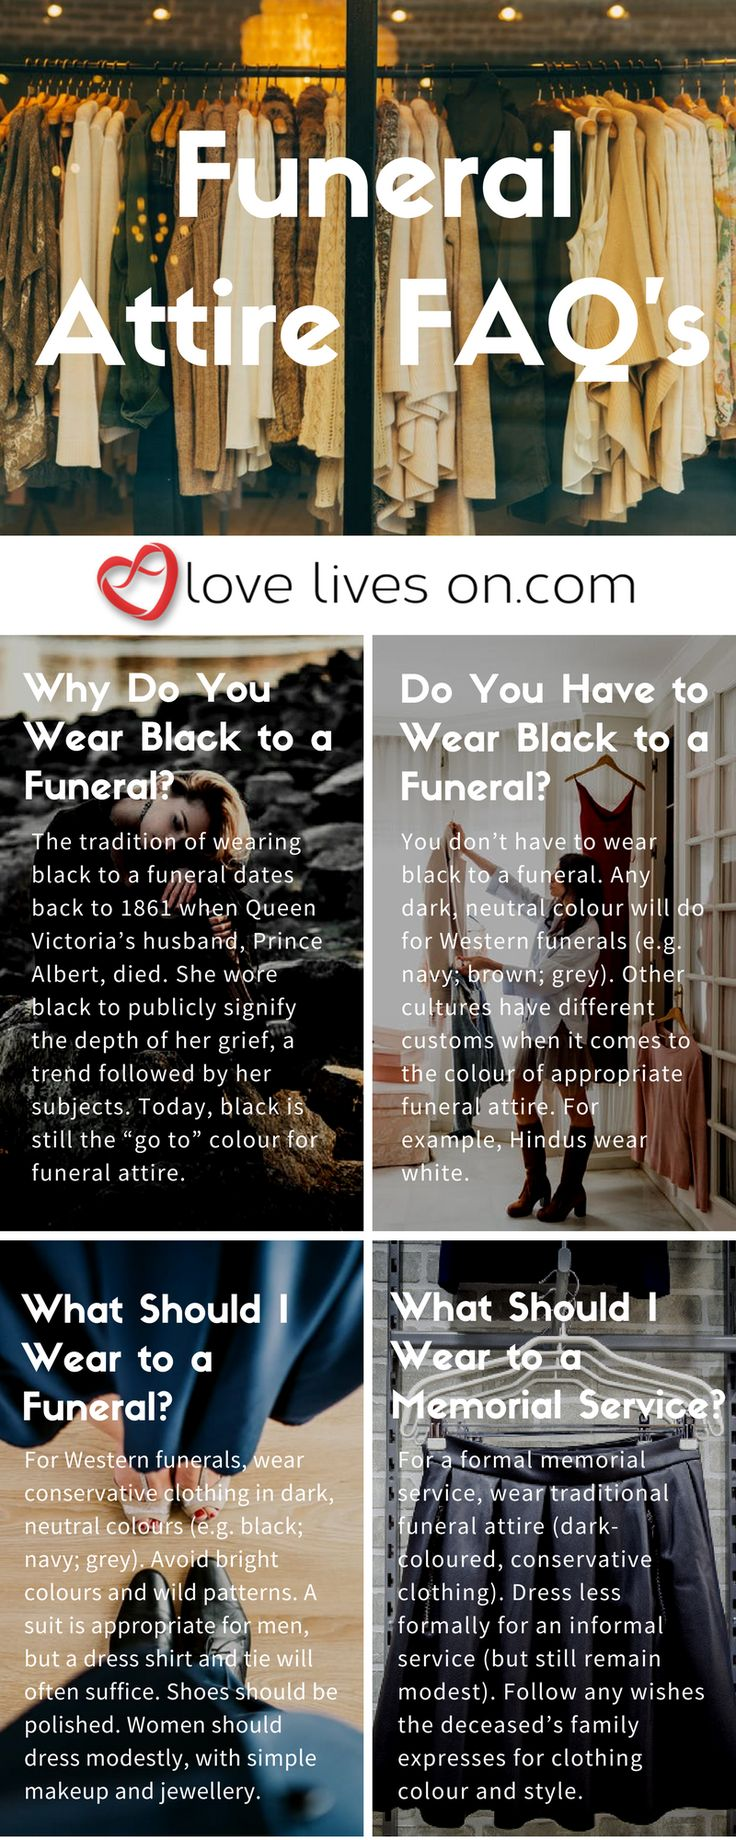 Infographic answering 4 frequently asked questions about funeral attire.